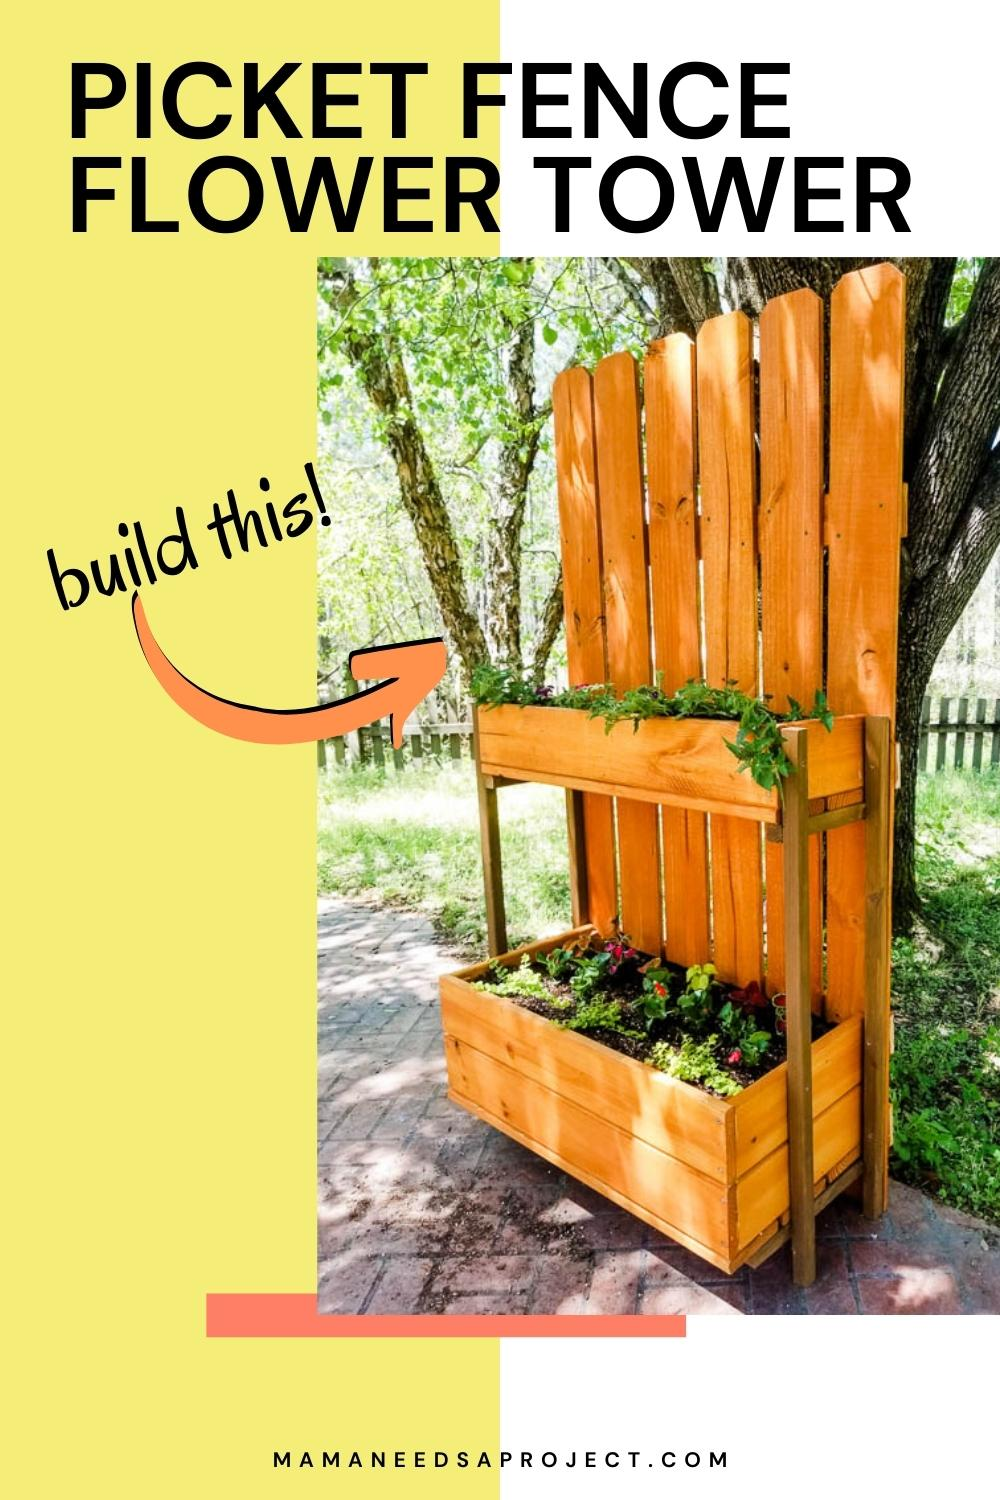 Text: Picket Fence Flower Tower with picture of completed flower tower. Arrow pointing at flower tower with text: build this